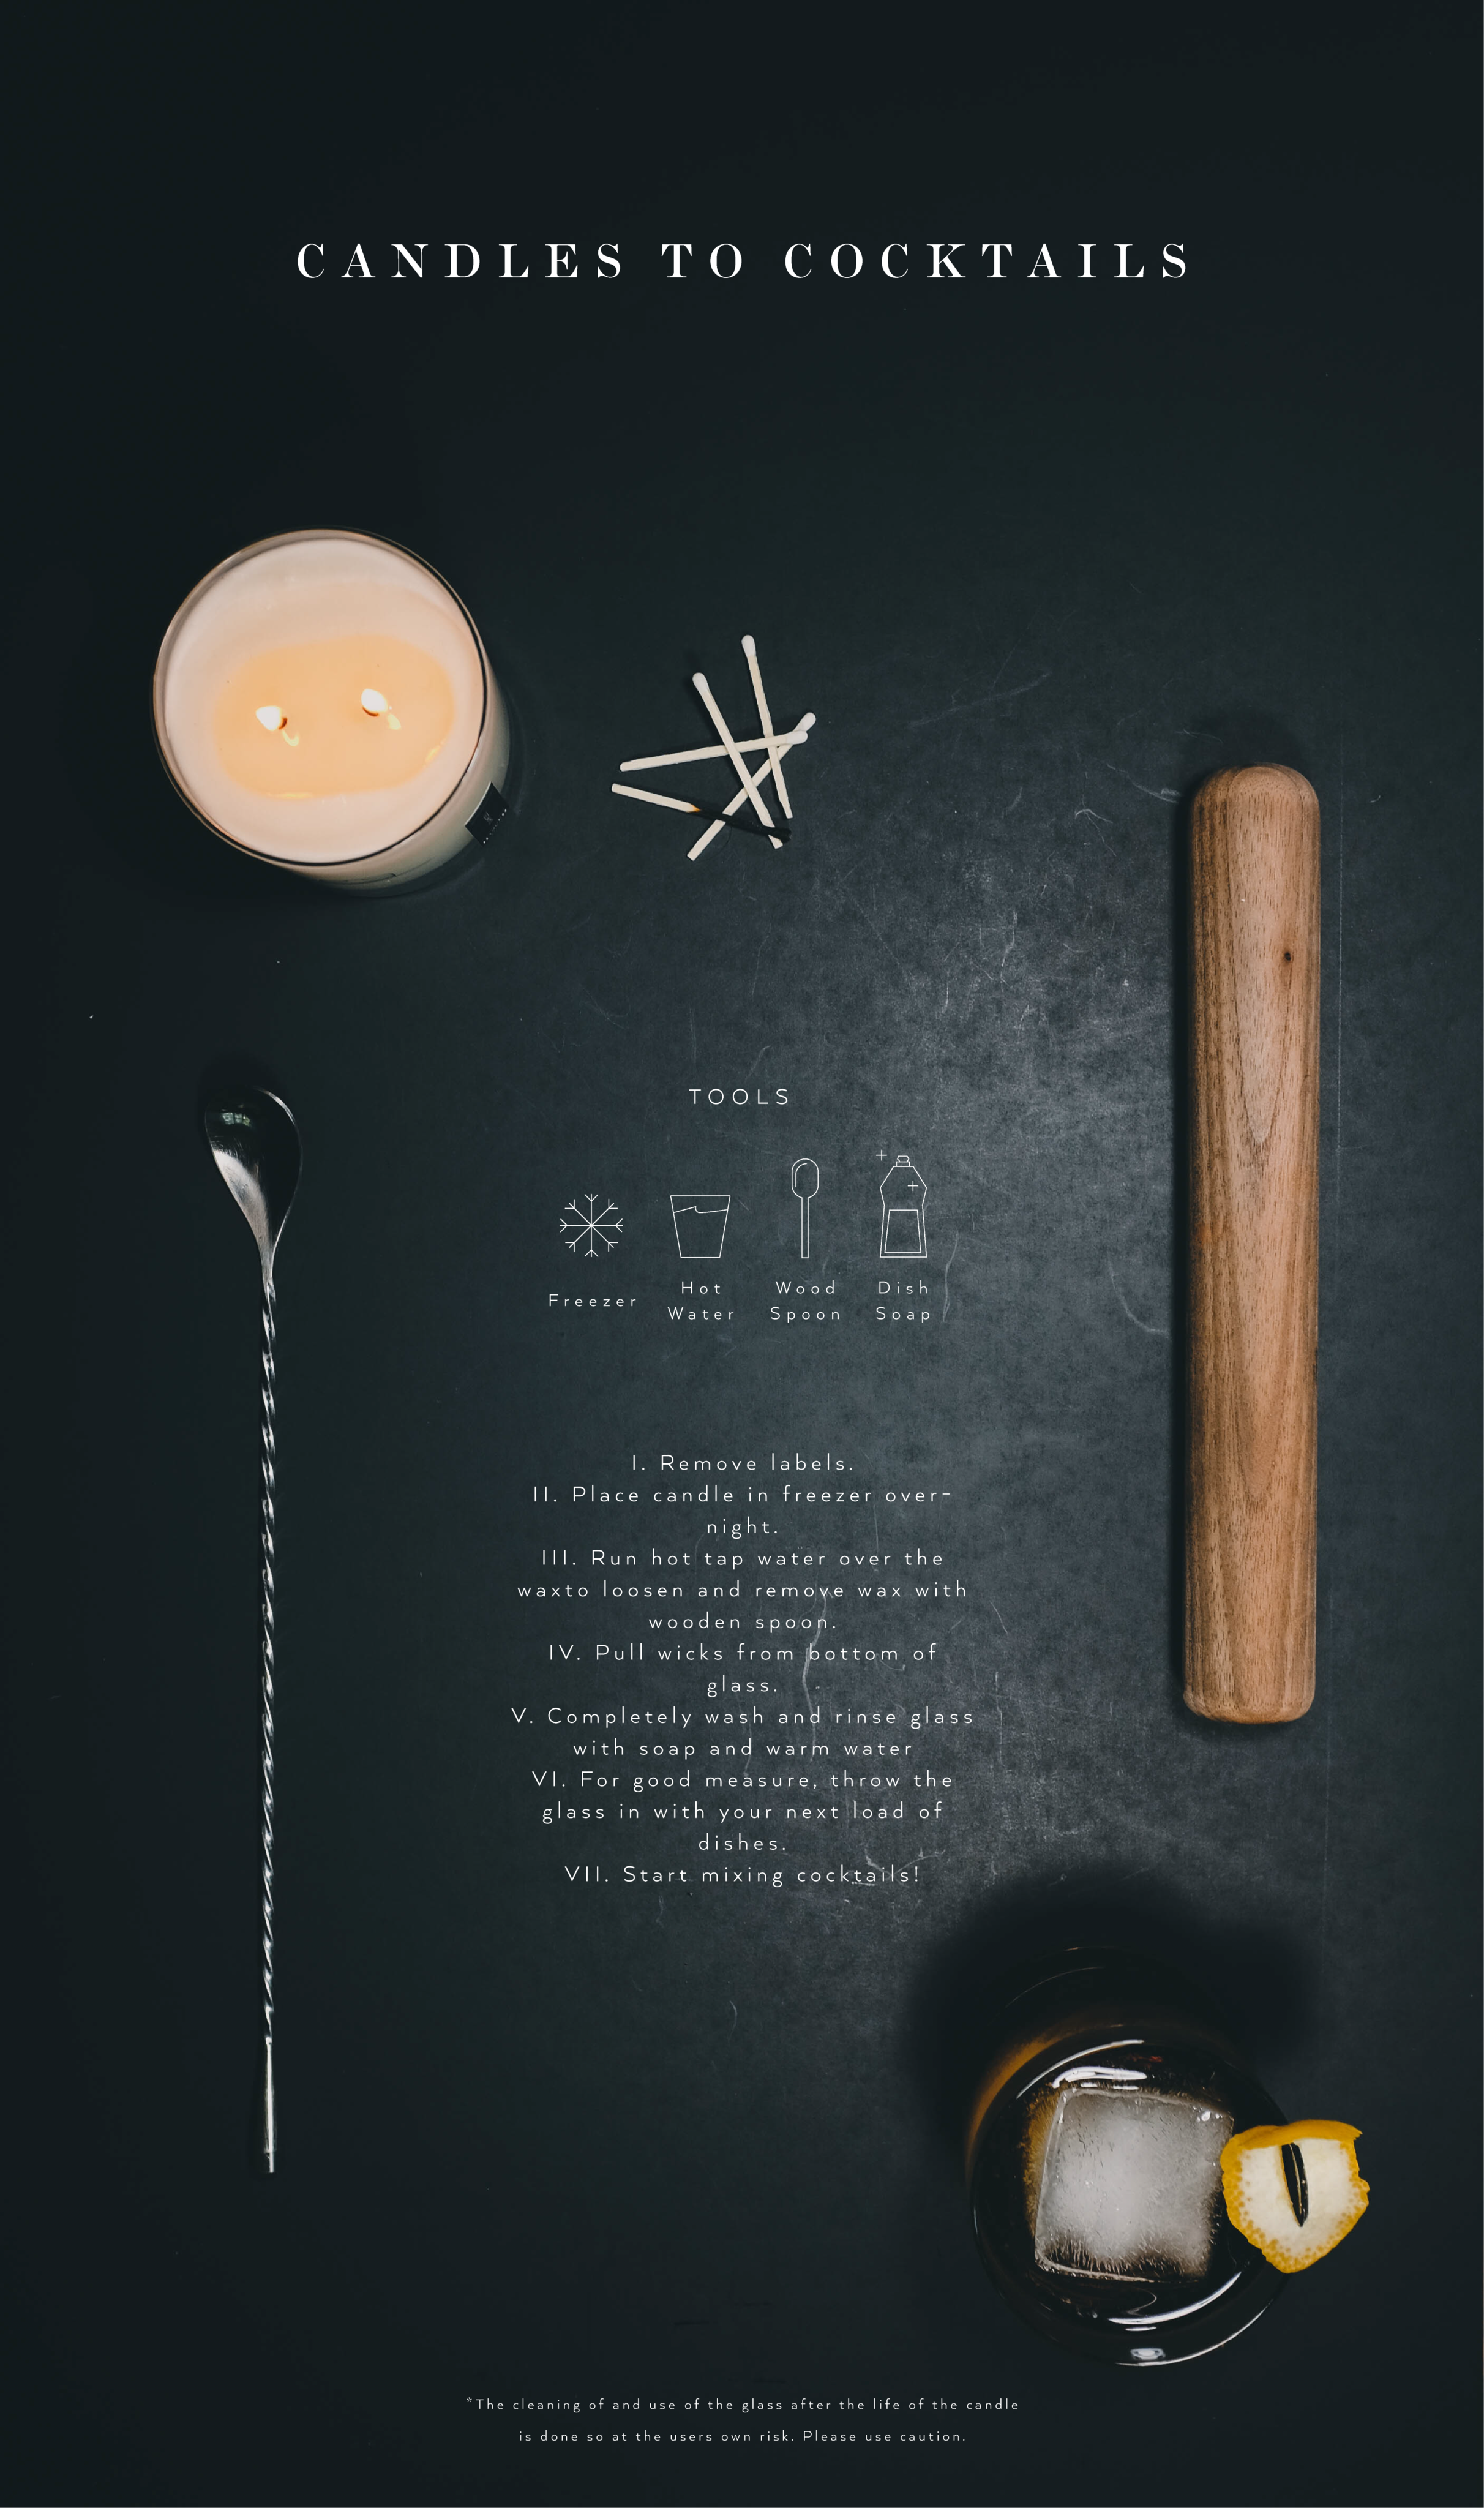 Candles to cocktails instructions